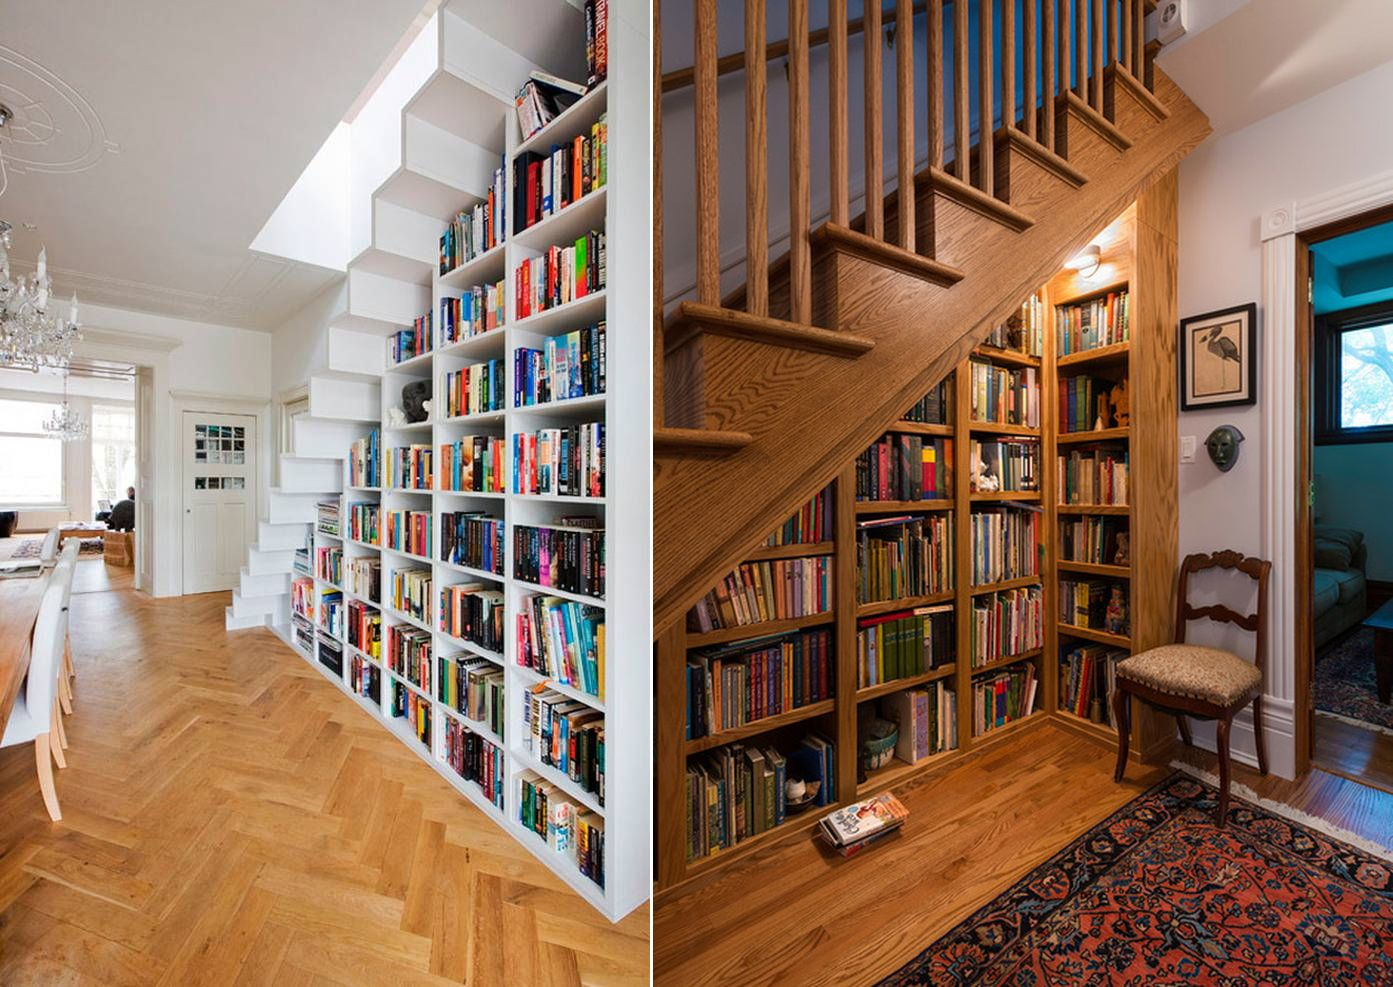 Book shelves under staircase